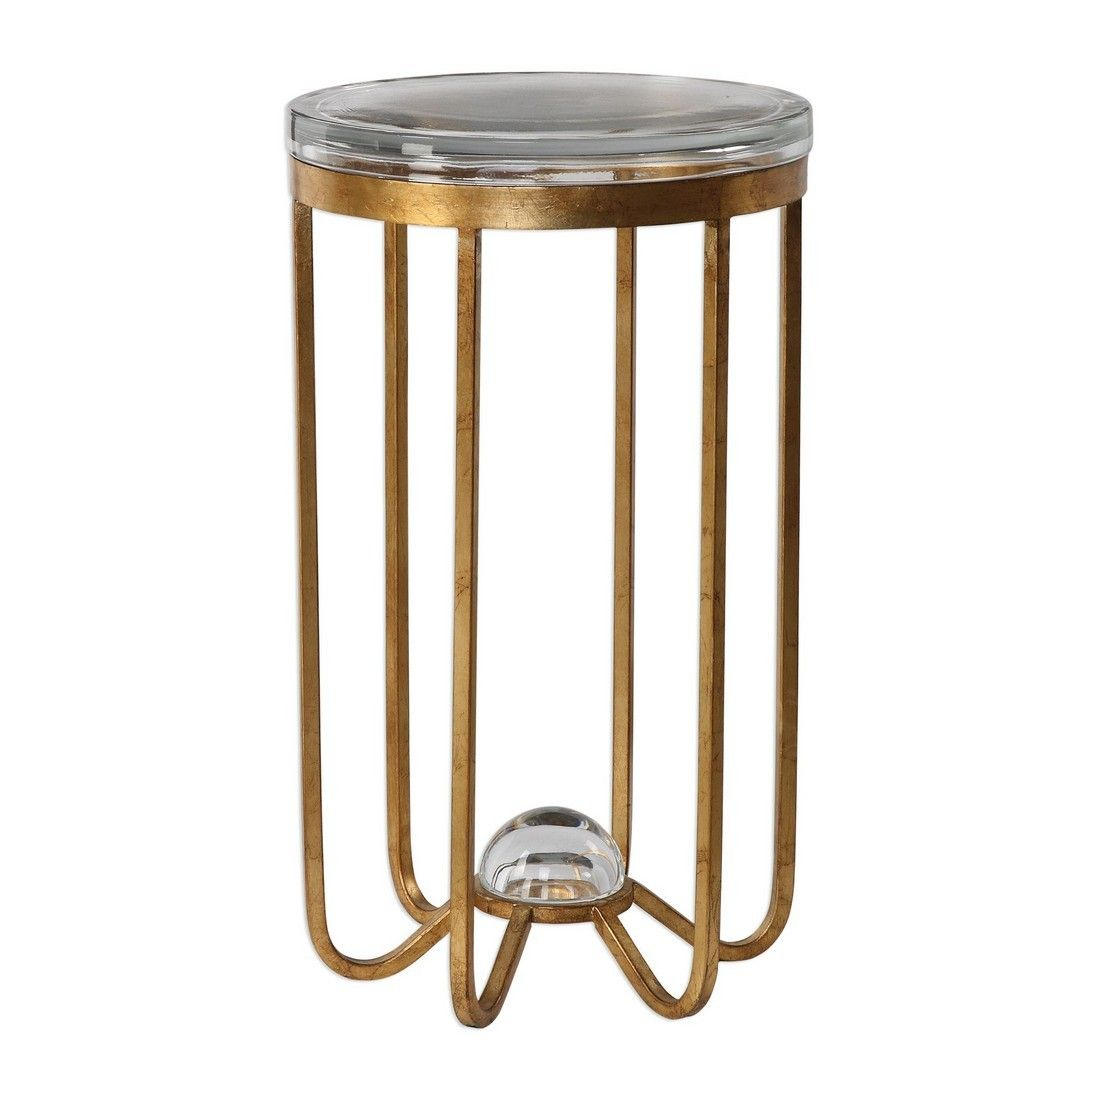 uttermost allura thick round glass accent table antique gold leaf diy industrial coffee target windsor chair outdoor umbrella leather sofa wall clock plastic tablecloths with